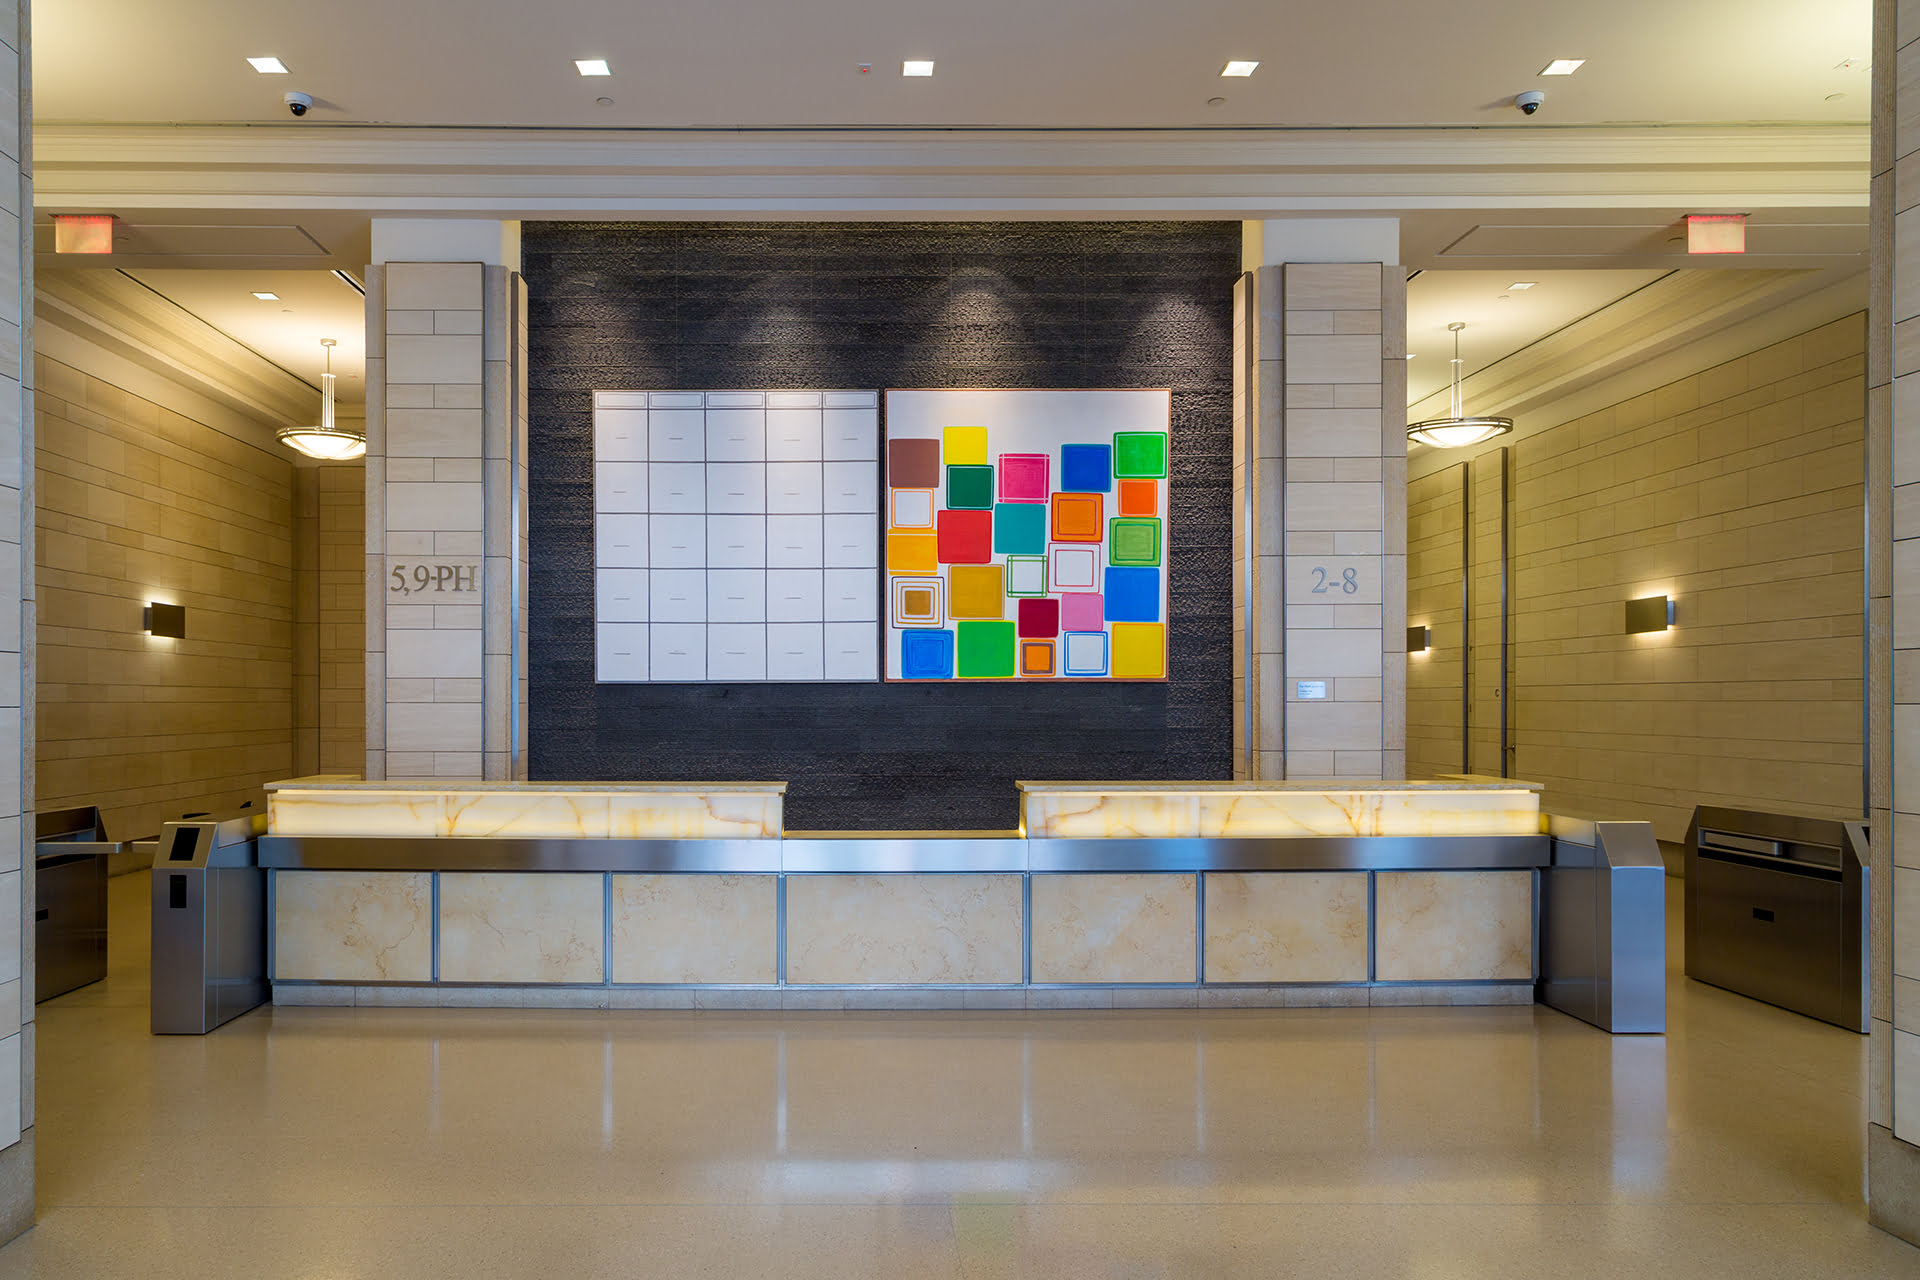 Interior lobby at 250 Hudson Street looking at front security desk